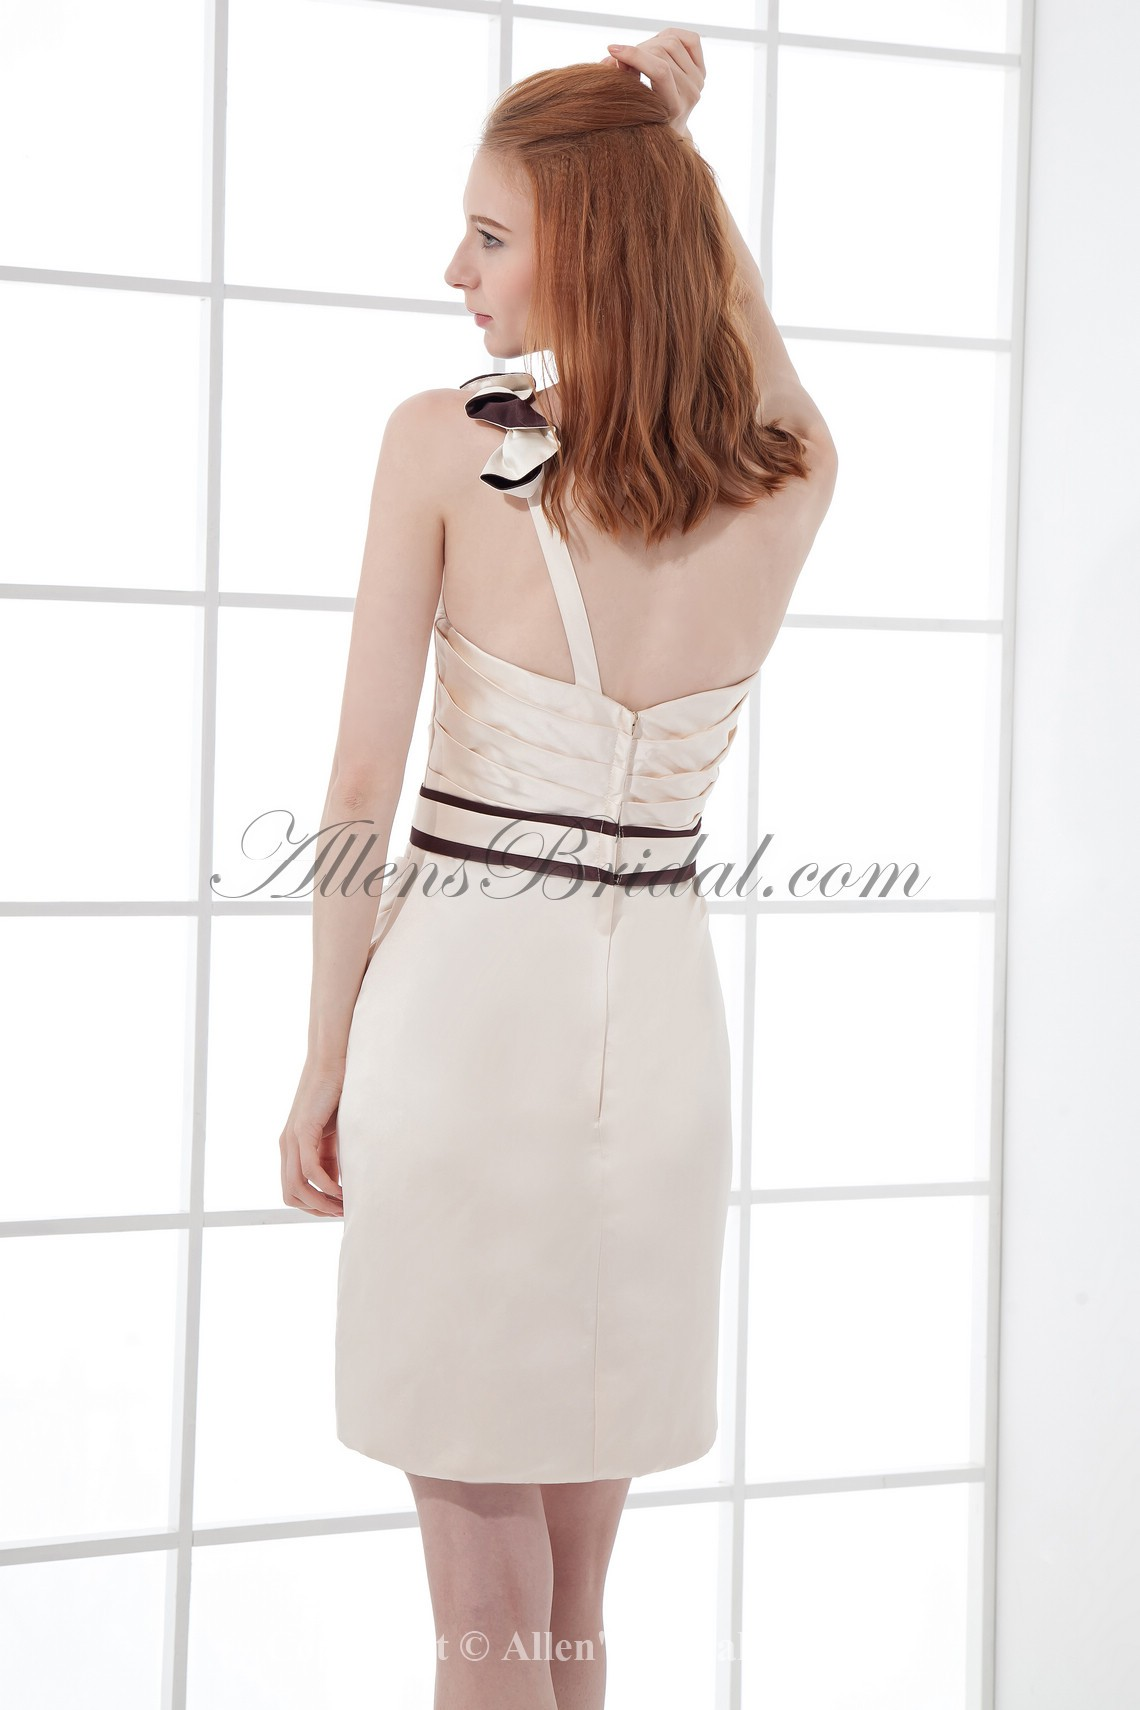 /69-551/satin-one-shoulder-neckline-sheath-short-bow-cocktail-dress.jpg